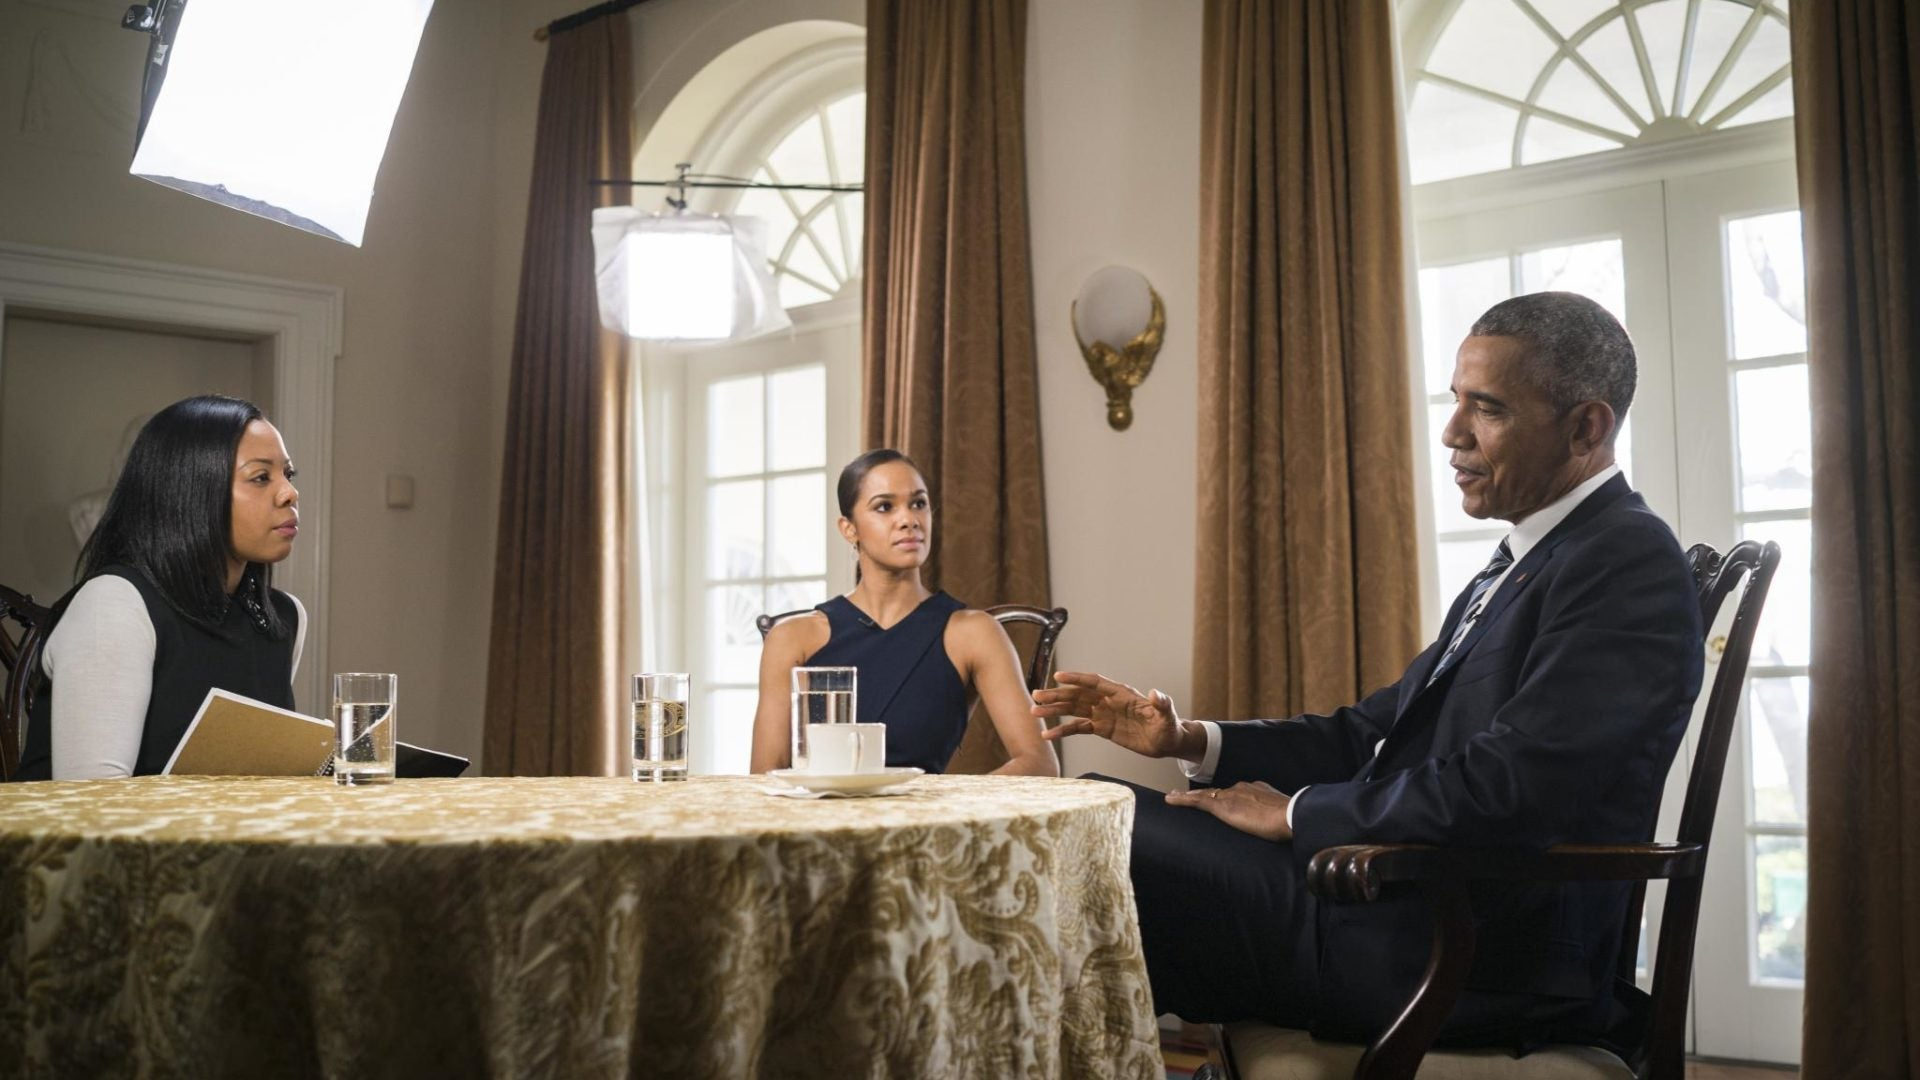 EXCLUSIVE: President Obama and Misty Copeland Talk Black Girl Magic and the Importance of Social Movements